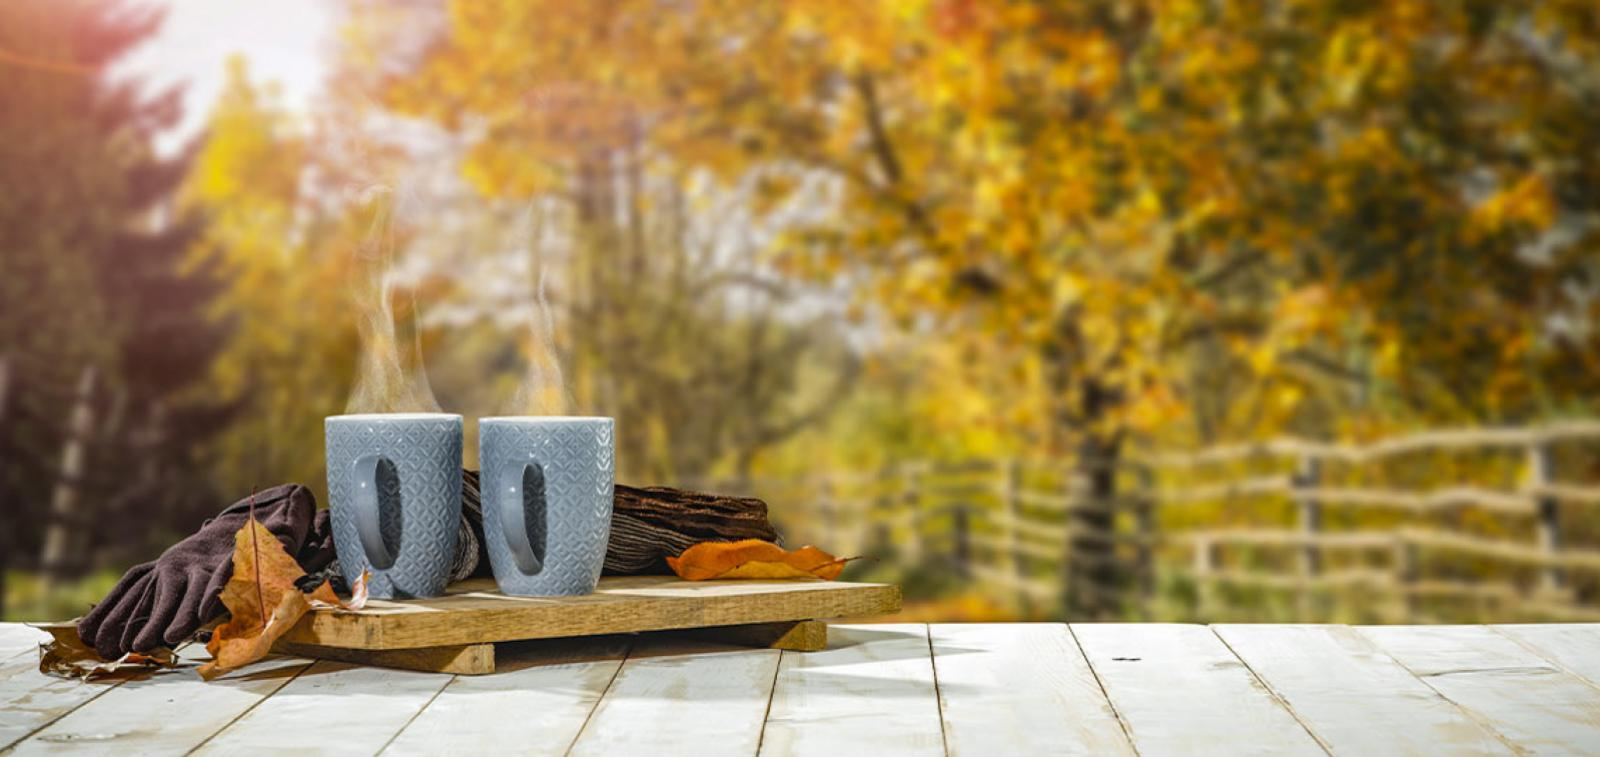 Two mugs of a hot drink sitting on a wooden board with an autumnal garden in the background